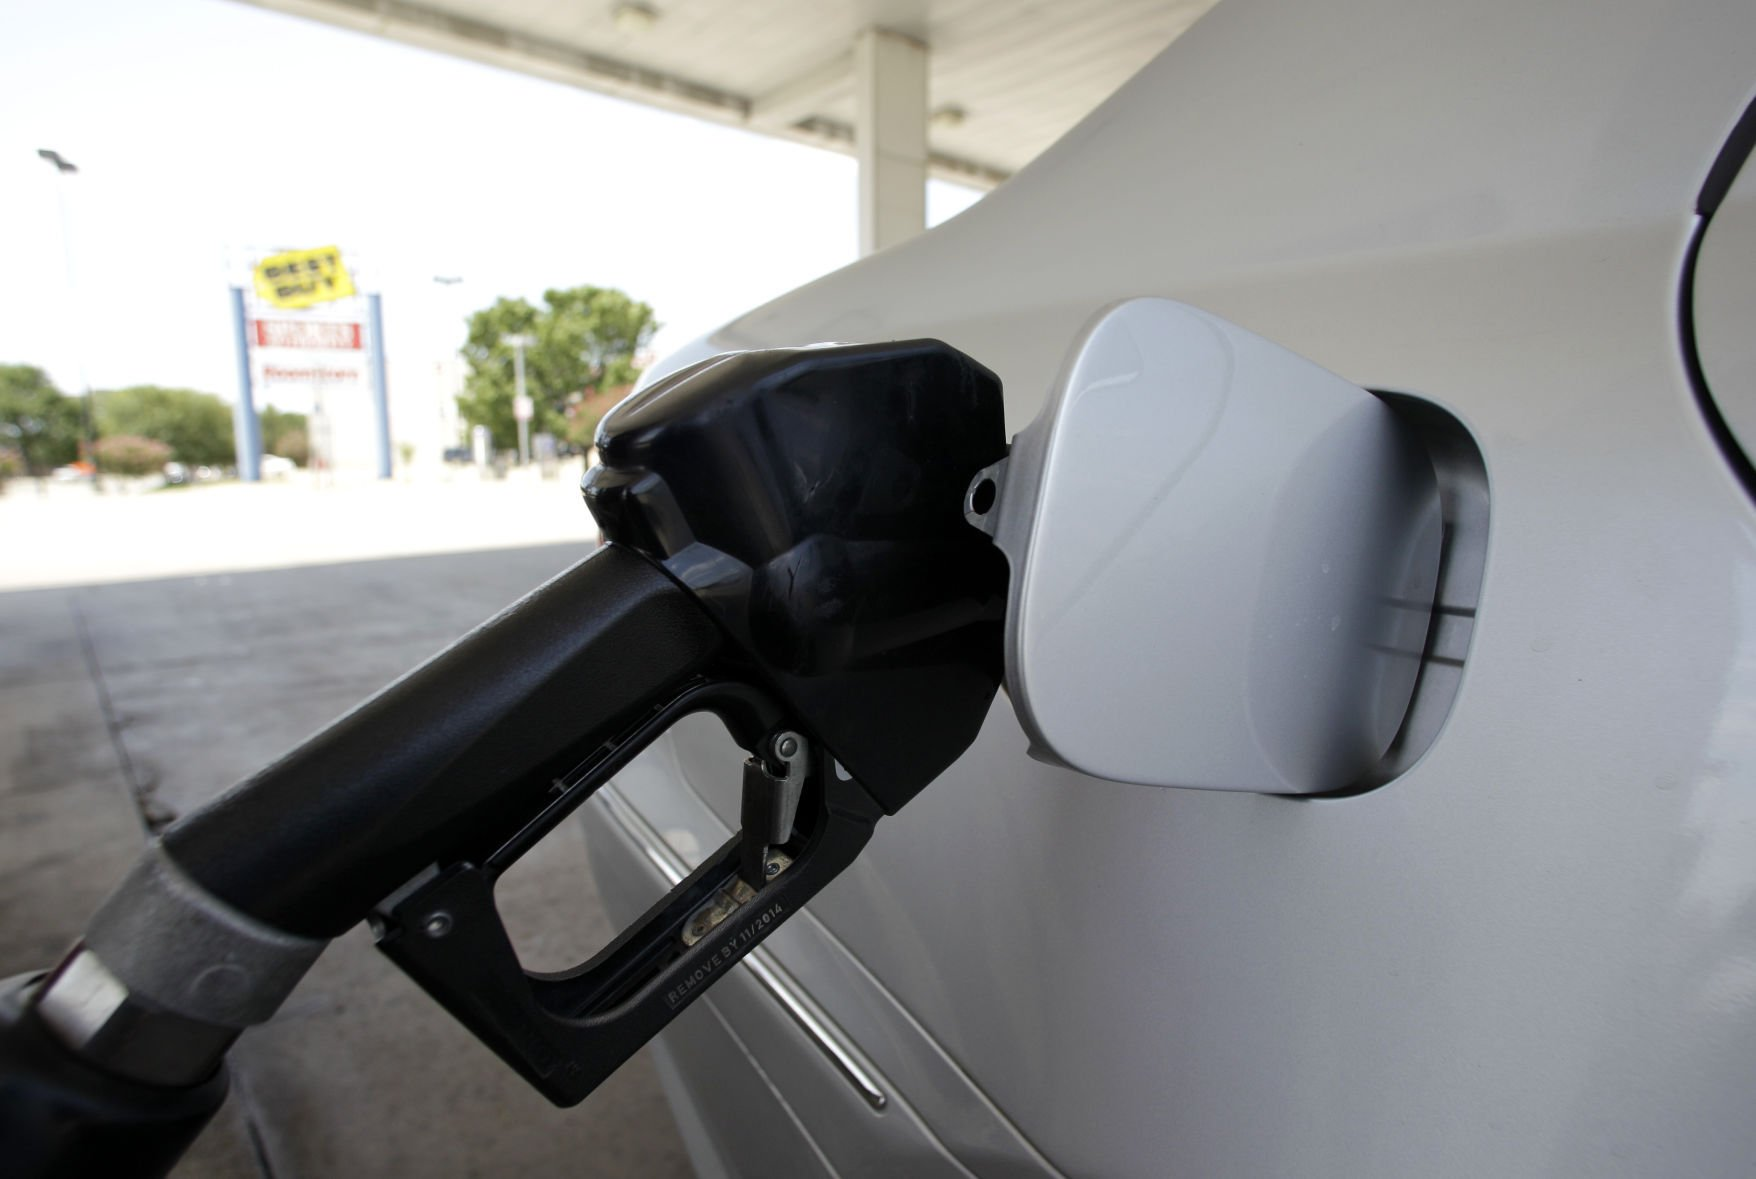 Gas prices rise this week in Texas